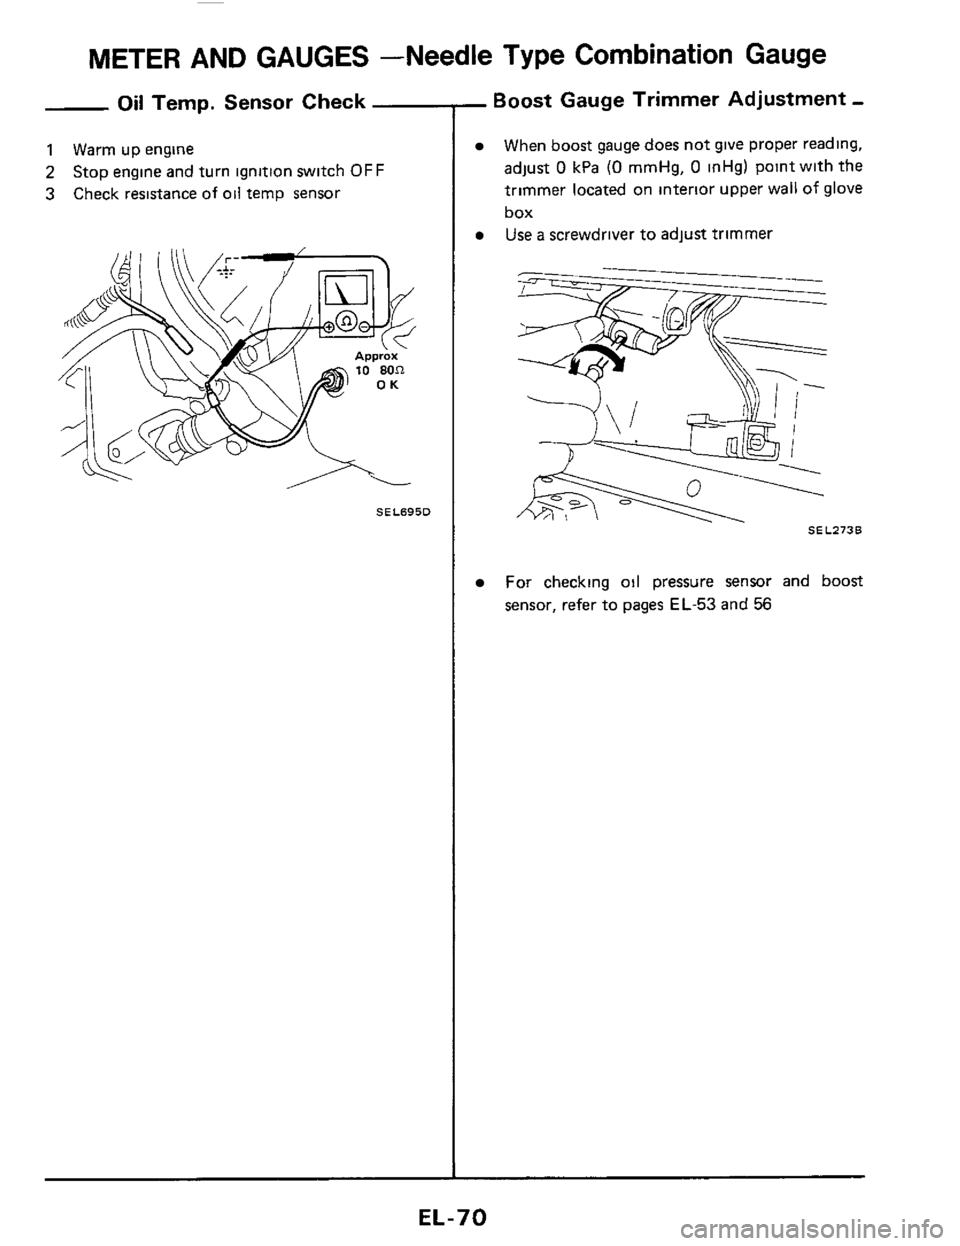 w960_567 69 engine nissan 300zx 1984 z31 electrical system workshop manual  at aneh.co